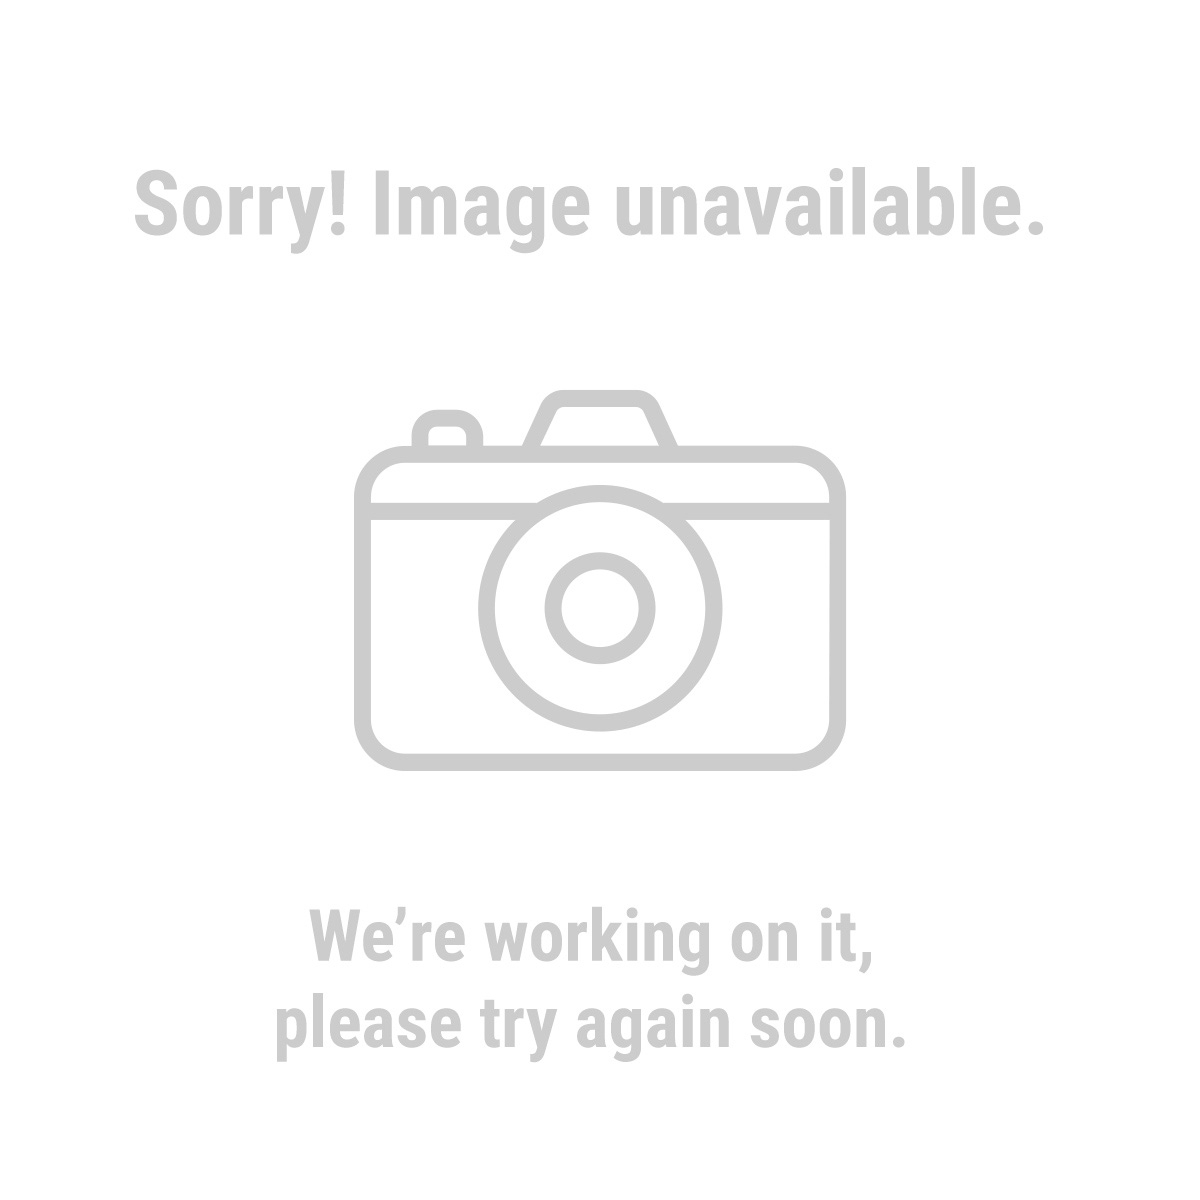 Badland® 61604 3500 lb. ATV/Utility Electric Winch with Automatic Load-Holding Brake